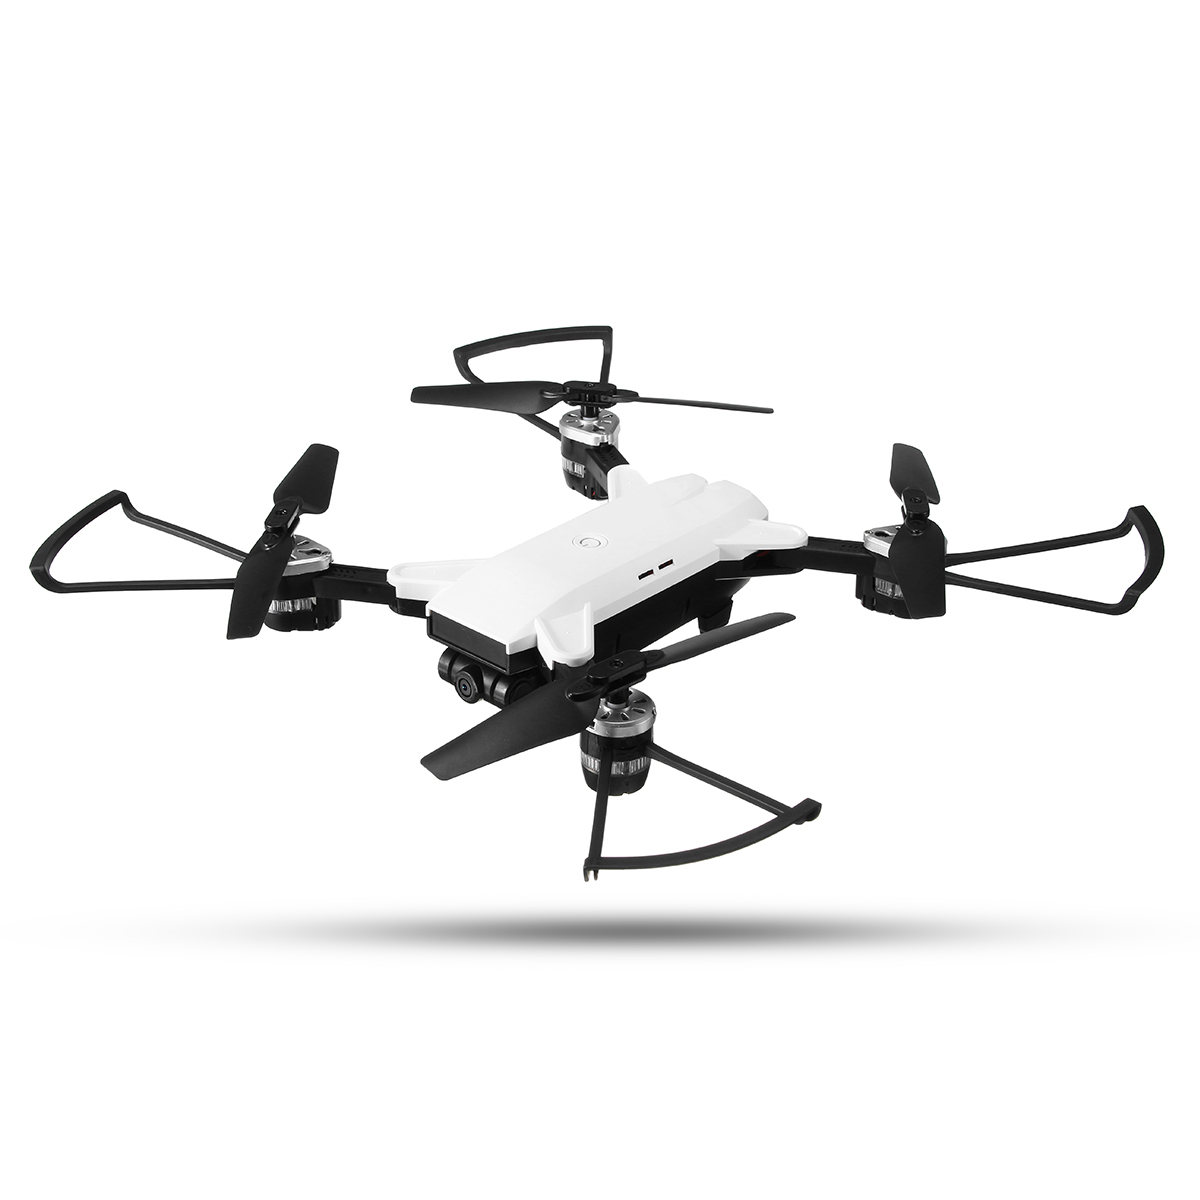 Smart Remote Control Kit HW Mini Foldable RC Helicopter Selfie Drone Wifi FPV 0.3MP  Altitude With LED Light Headless hot aerial rc h37 quadcoptertracker foldable mini rc selfie drone with wifi fpv 720p camera g sensor altitude hold